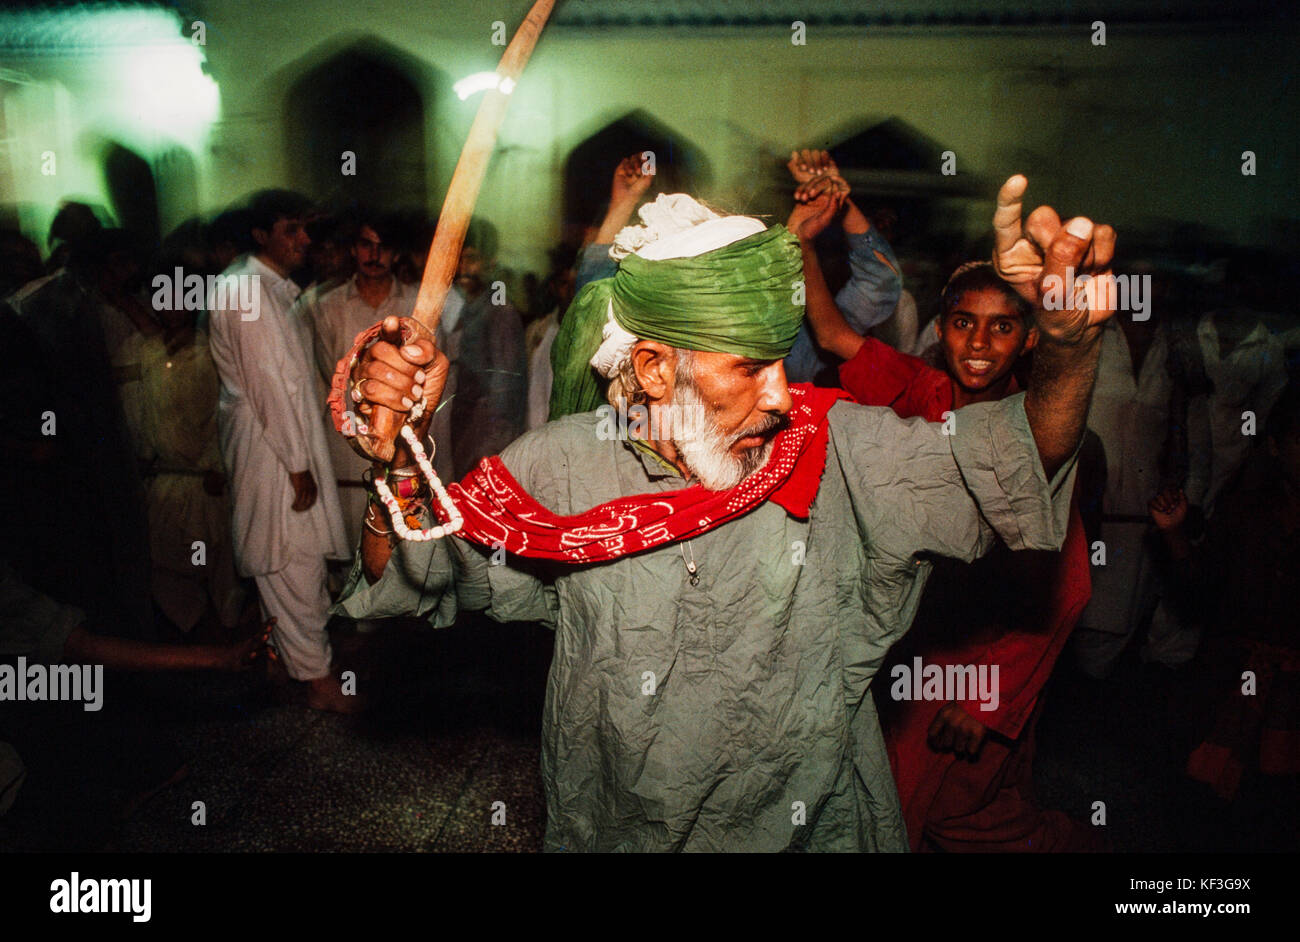 Dervish dancers at the Mausoleum of Lal Shahbaz Qalander, Sehwan Sharif, Sindh, Pakistan, 1990. - Stock Image